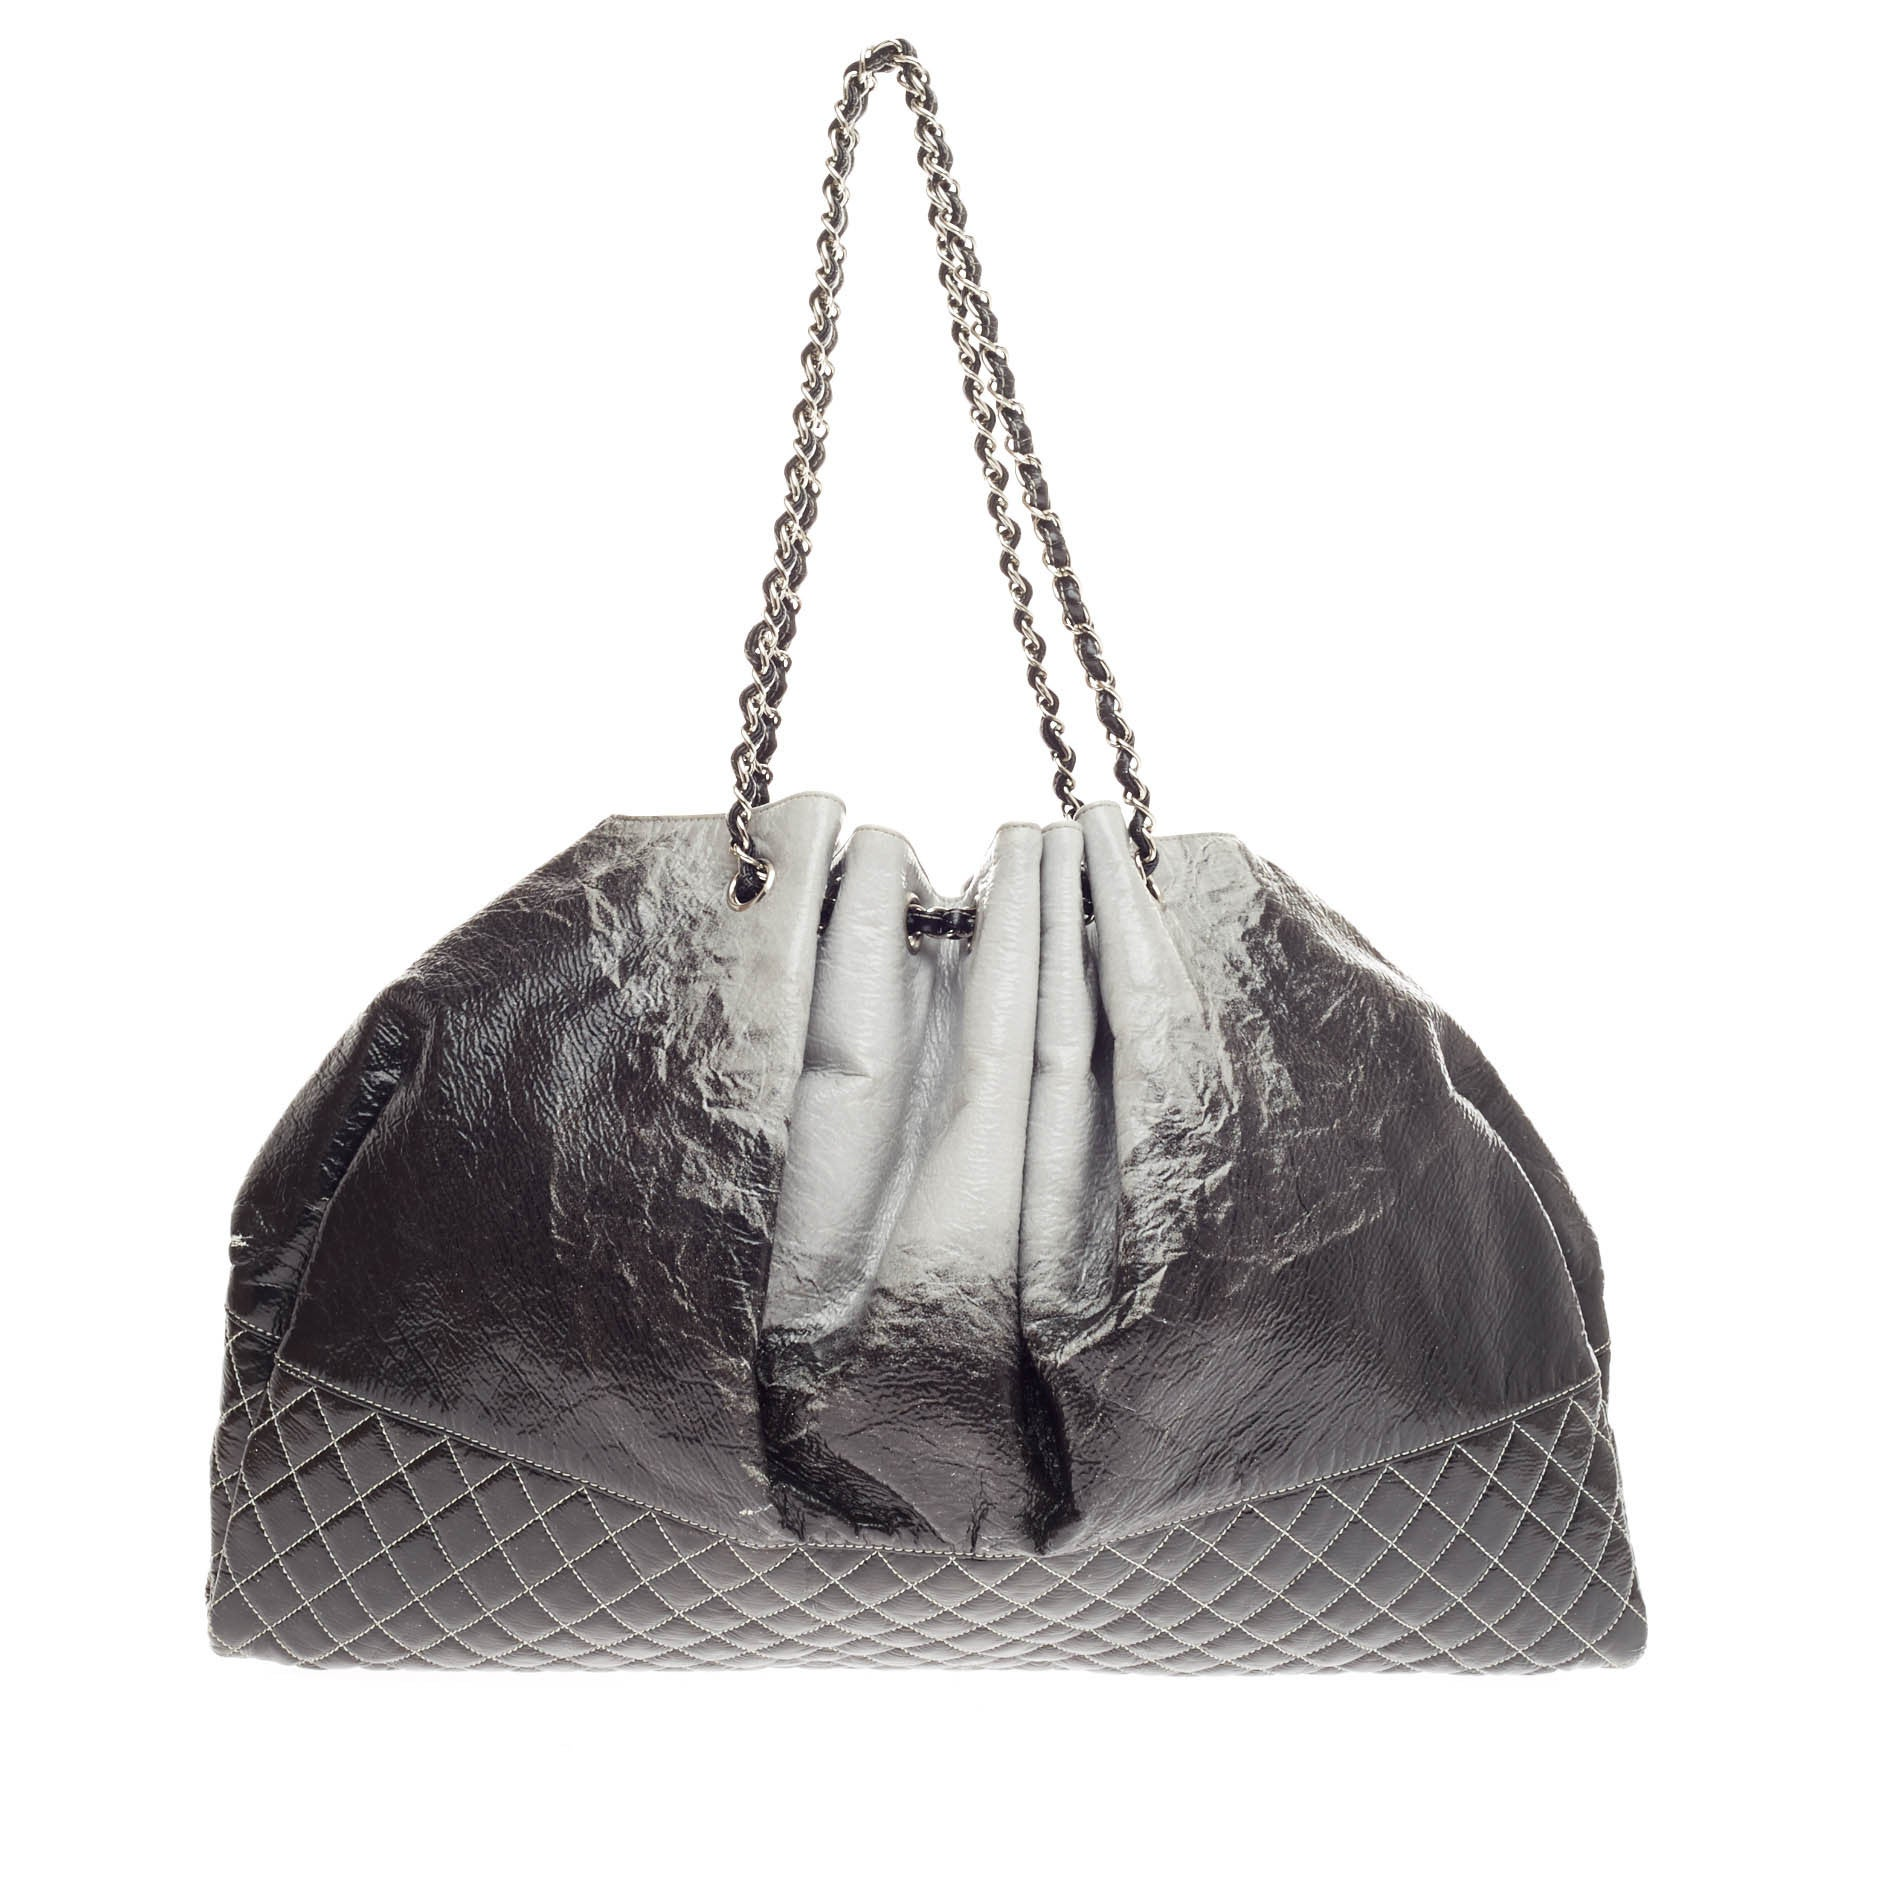 17262802ab91 Chanel Melrose Degrade Cabas Tote Patent at 1stdibs